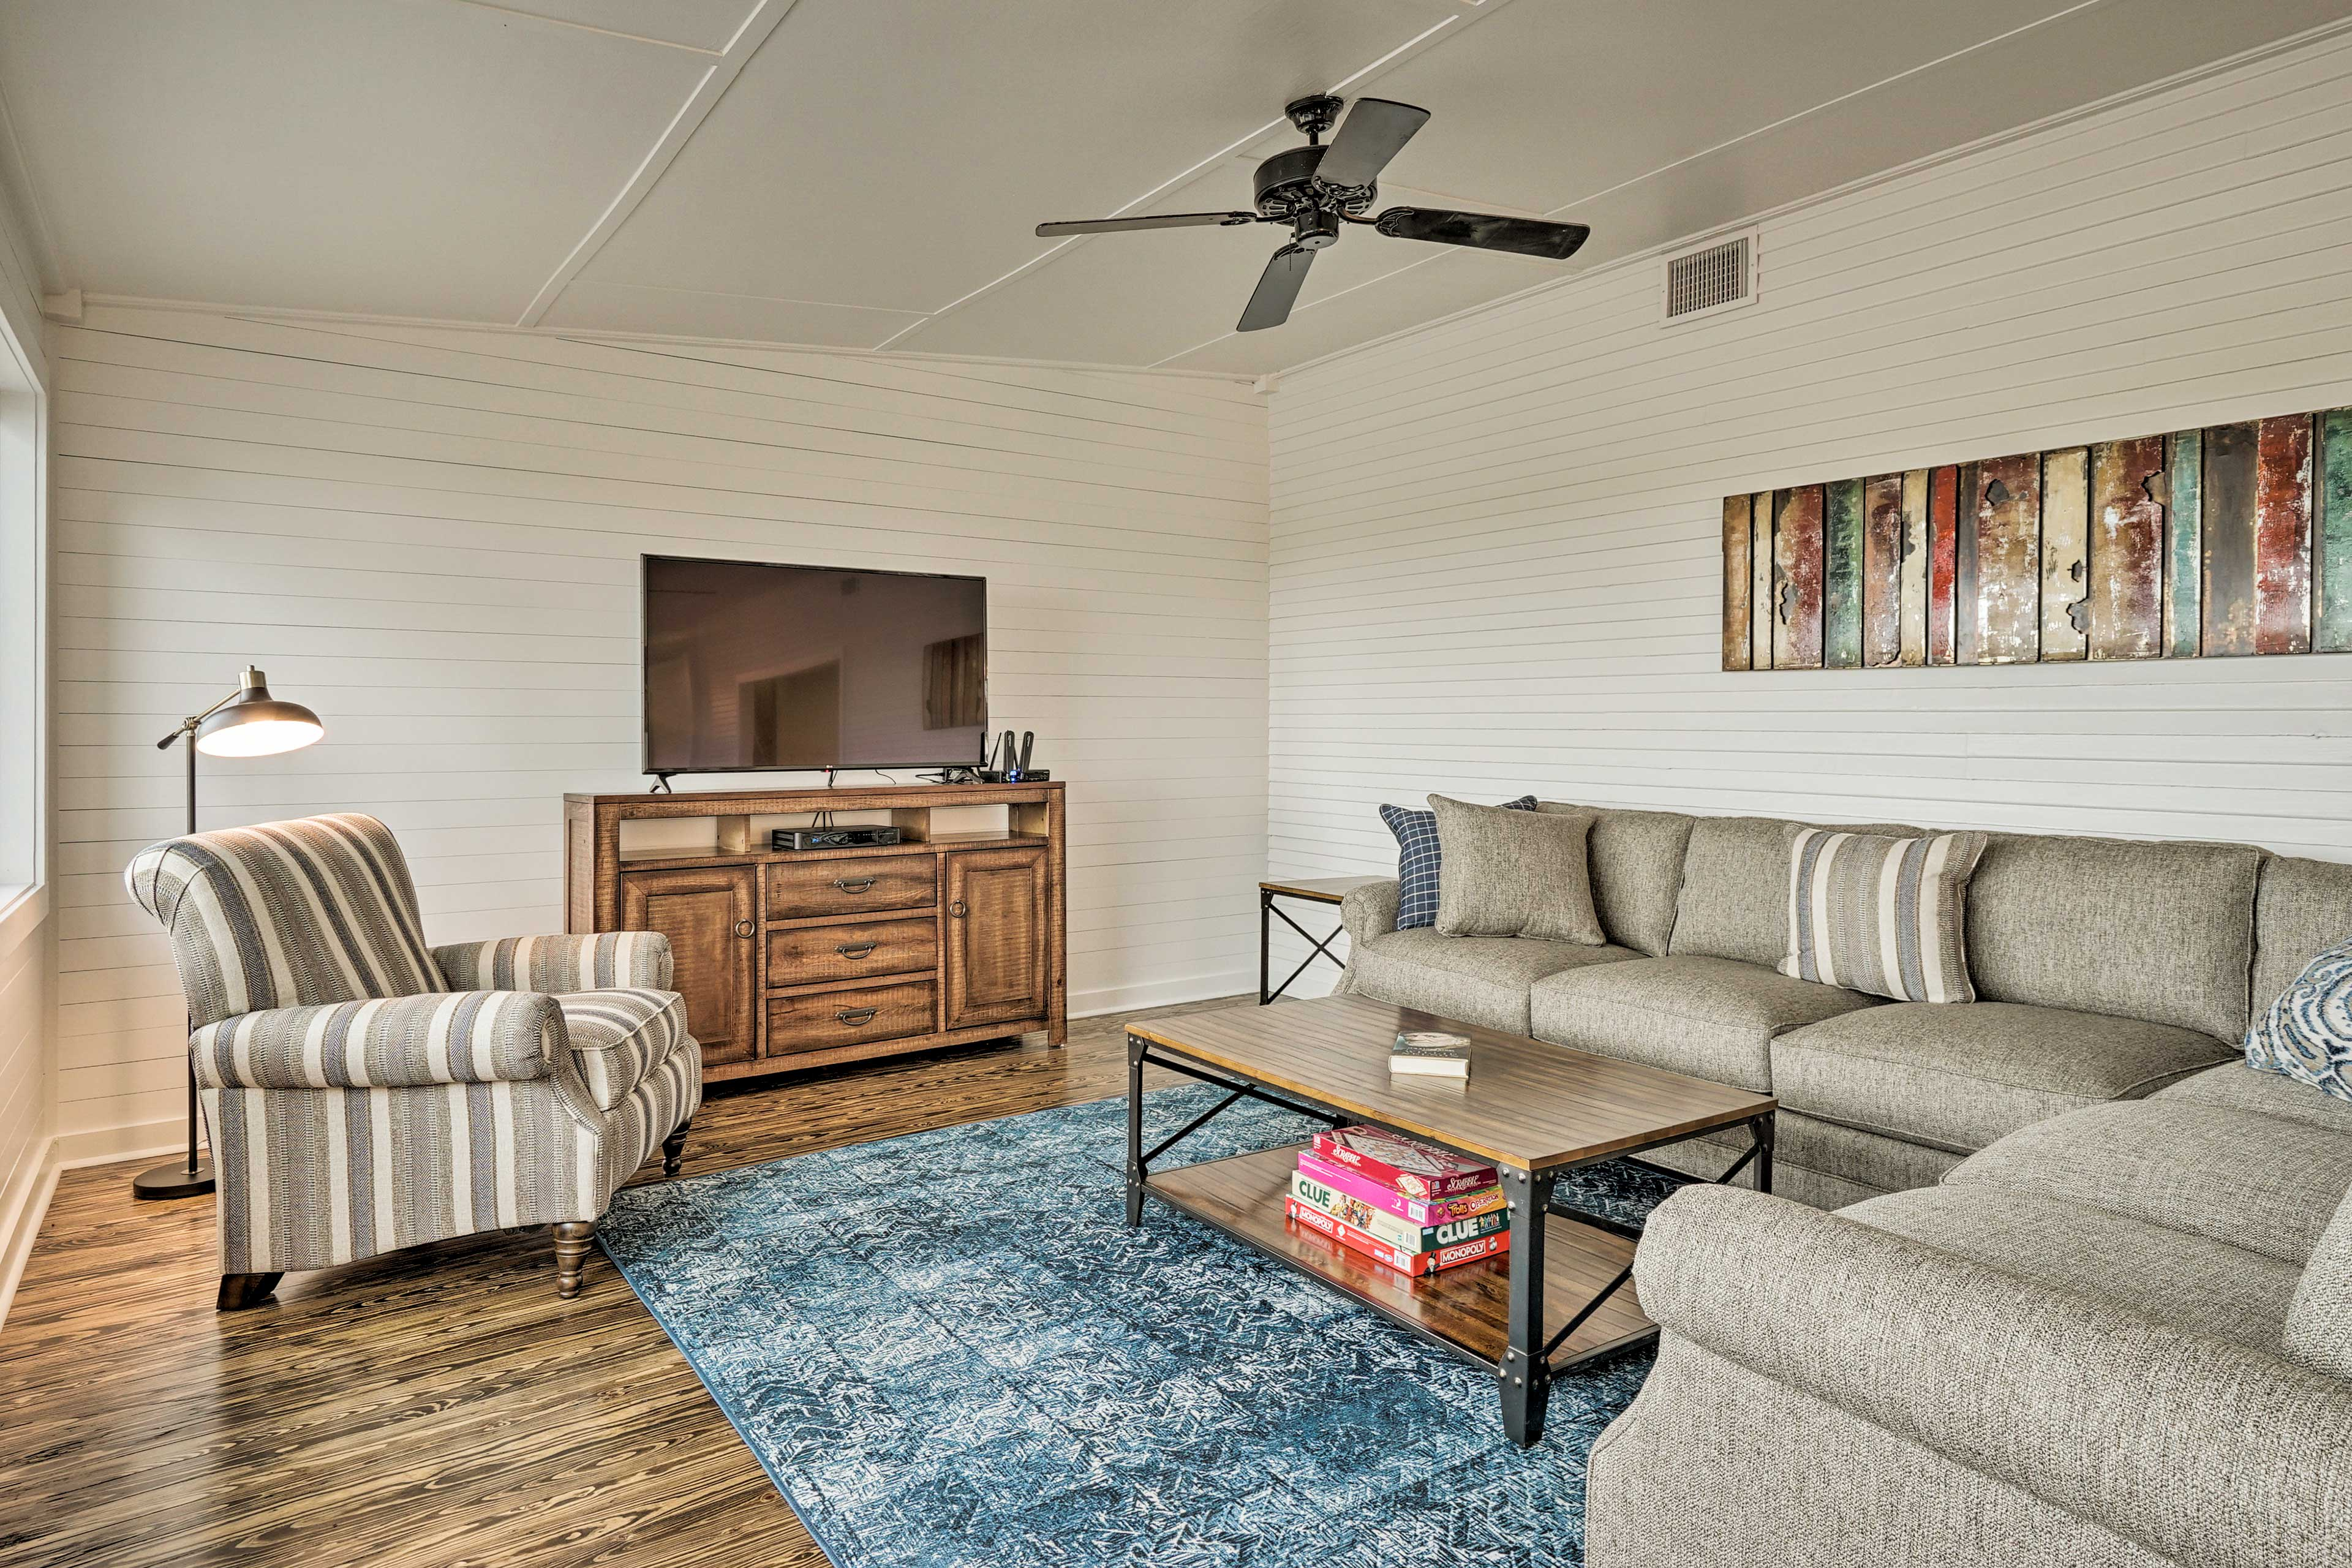 Unwind in front of the flat-screen TV in the living room.